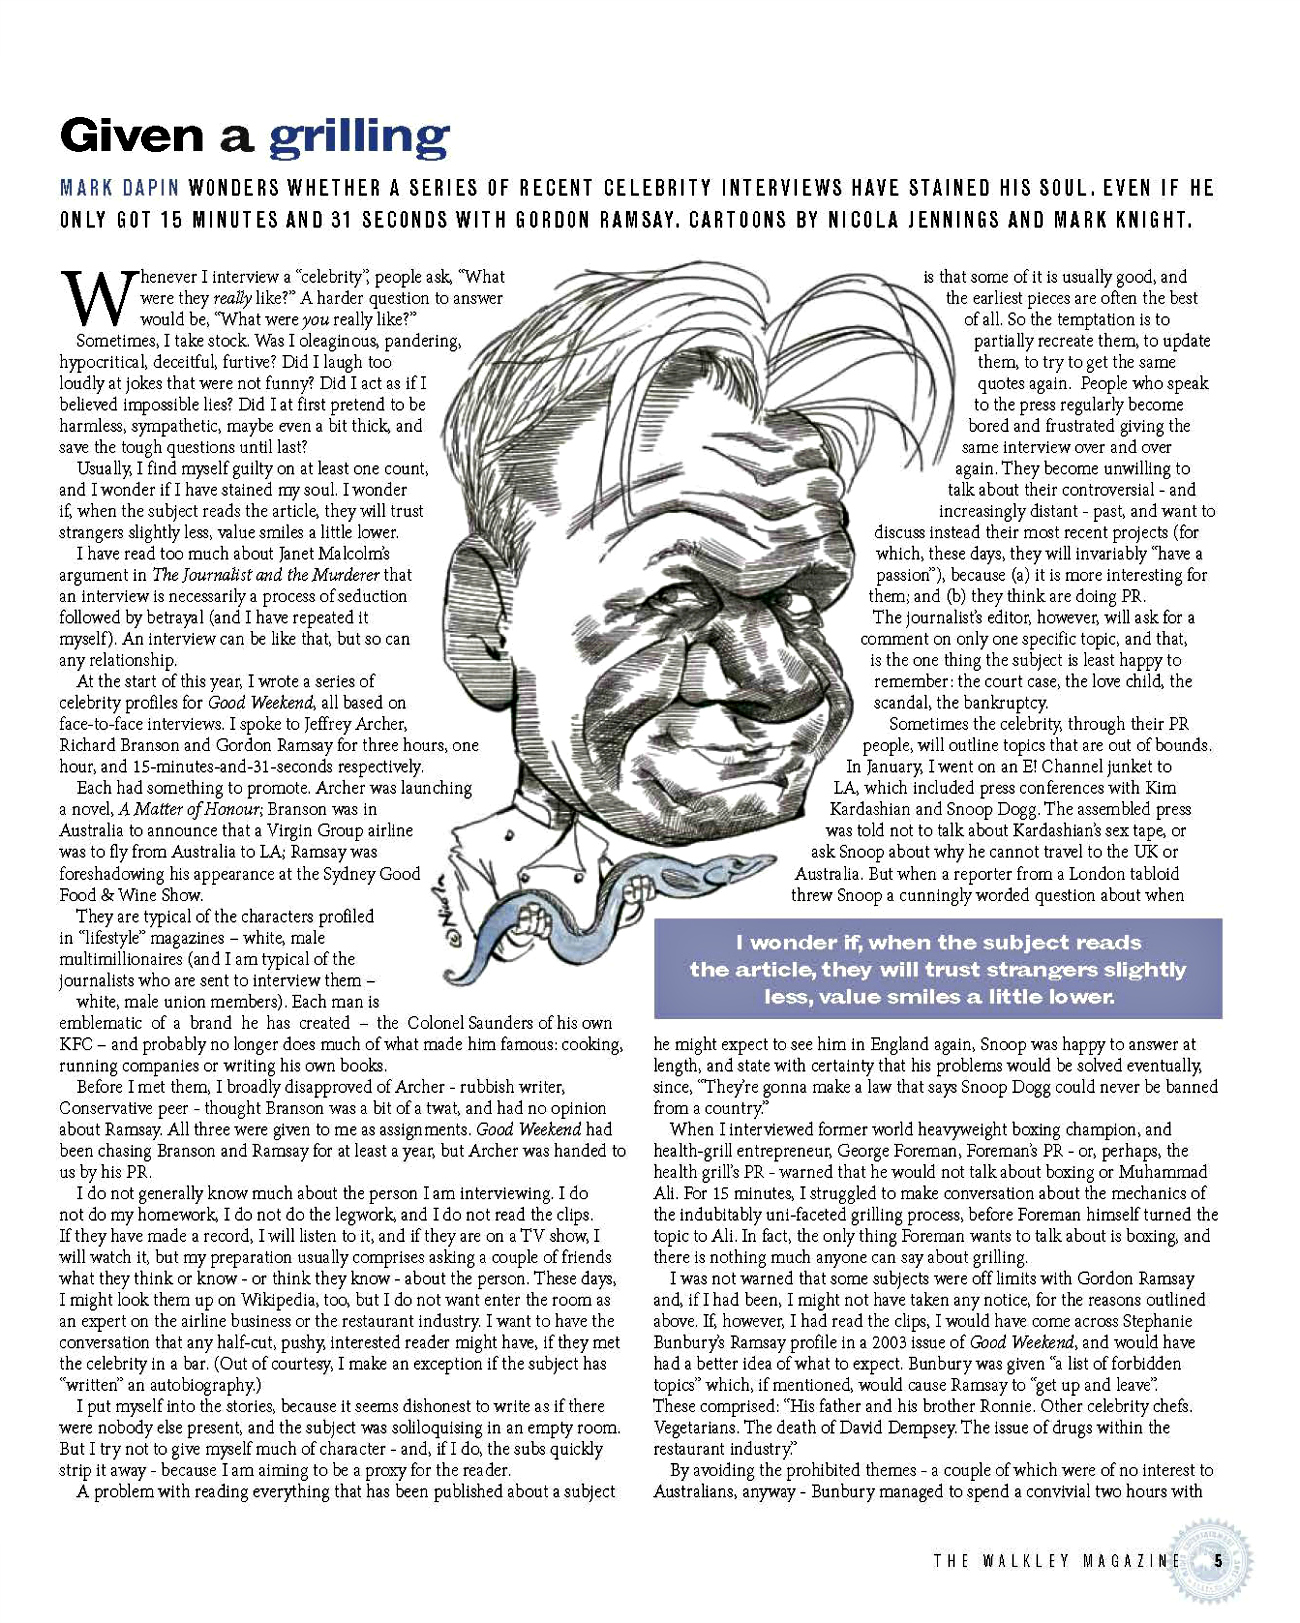 Walkley Magazine - Given a Grilling 1